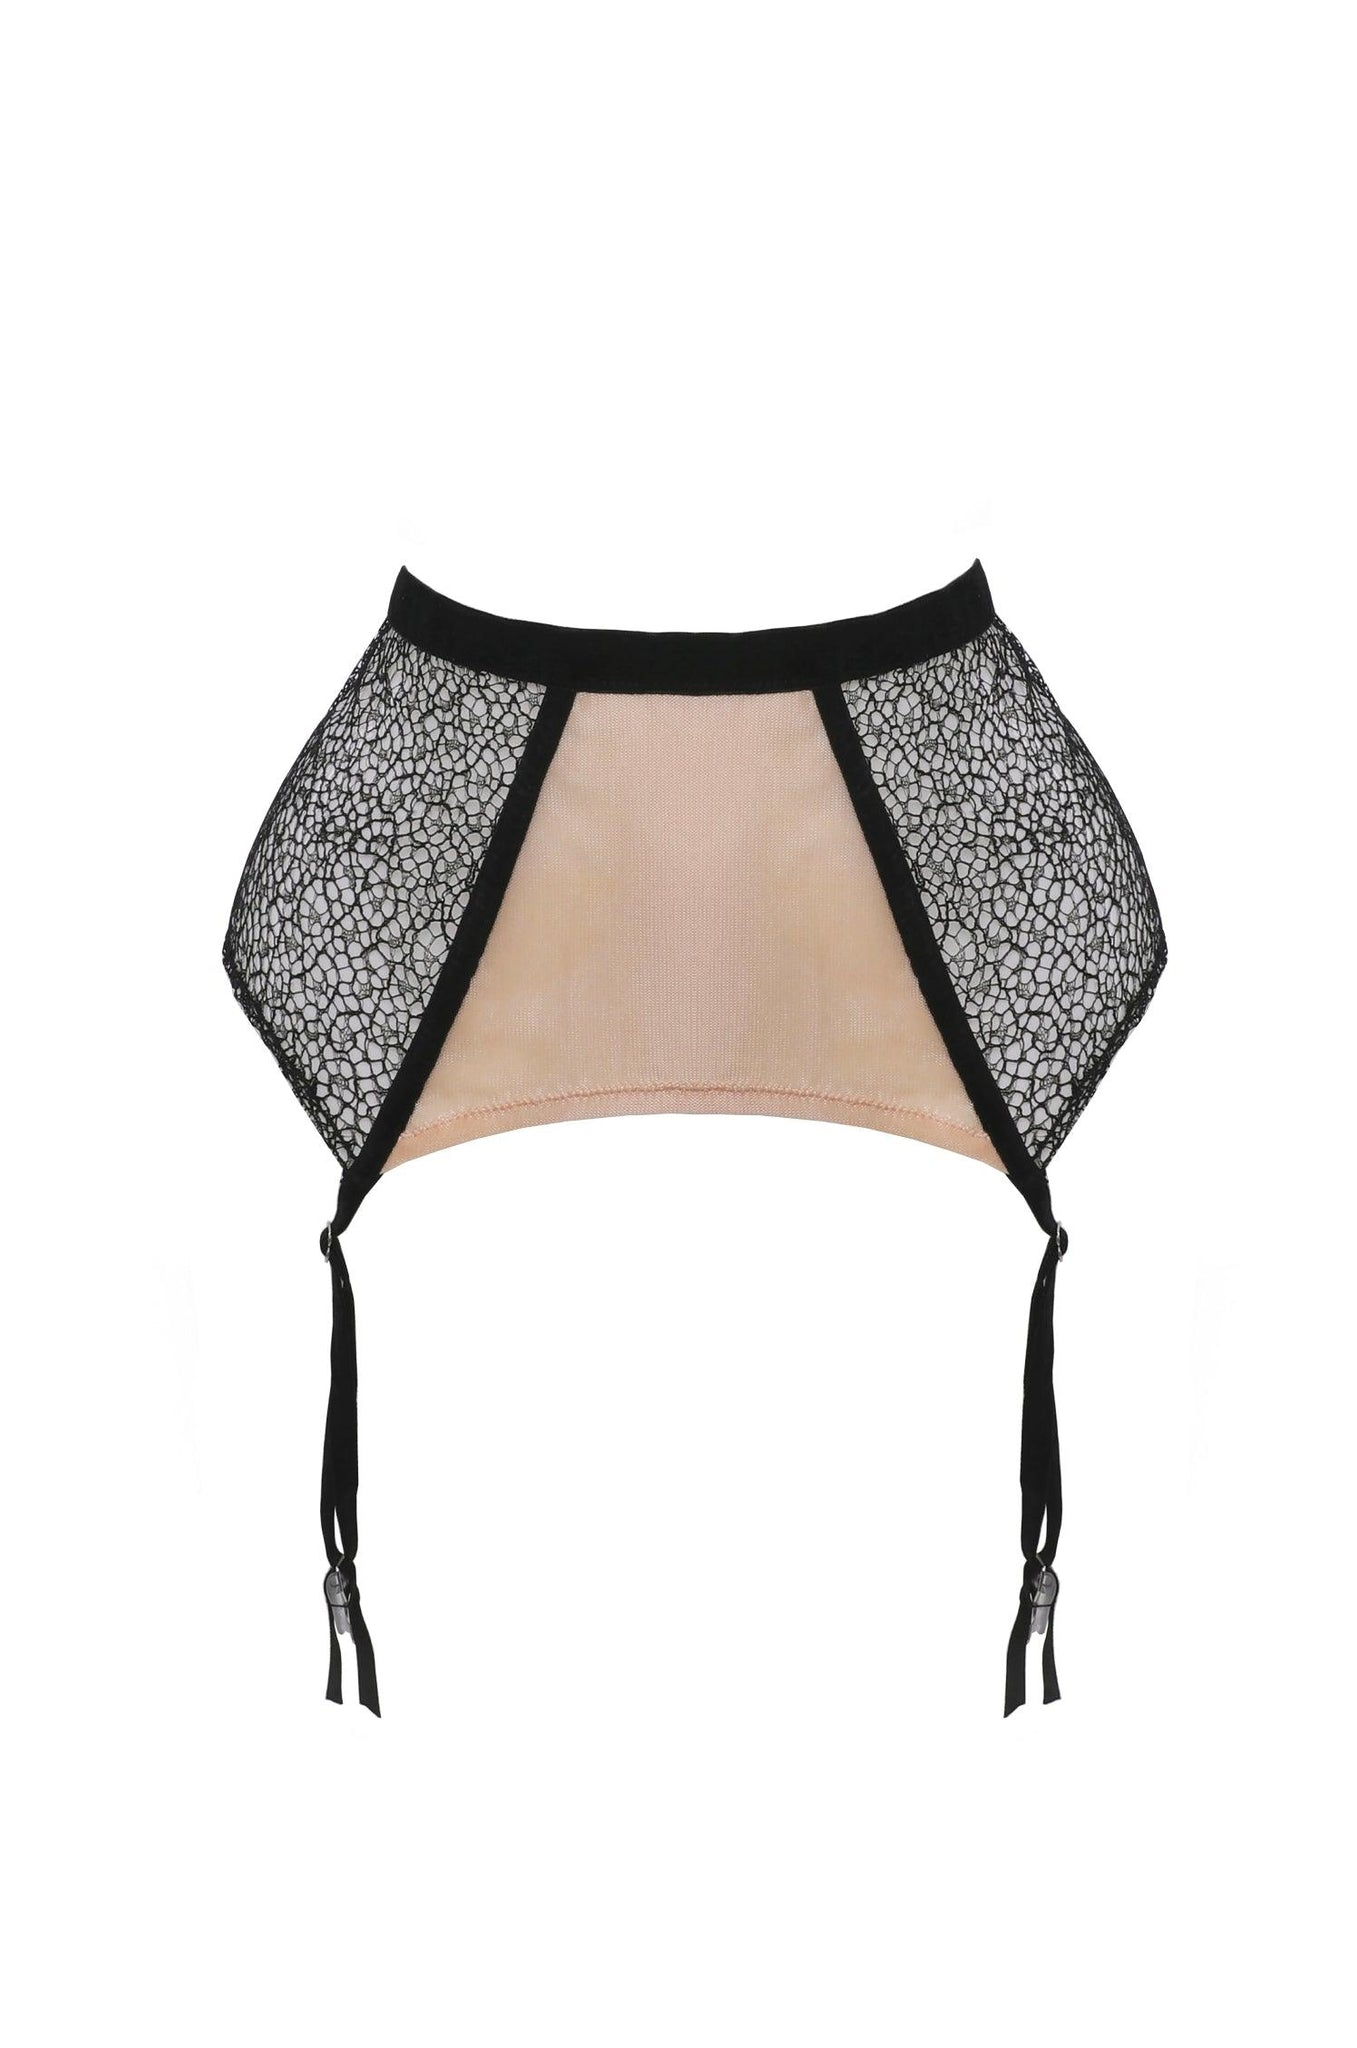 Madame de Montespan's suspender belt